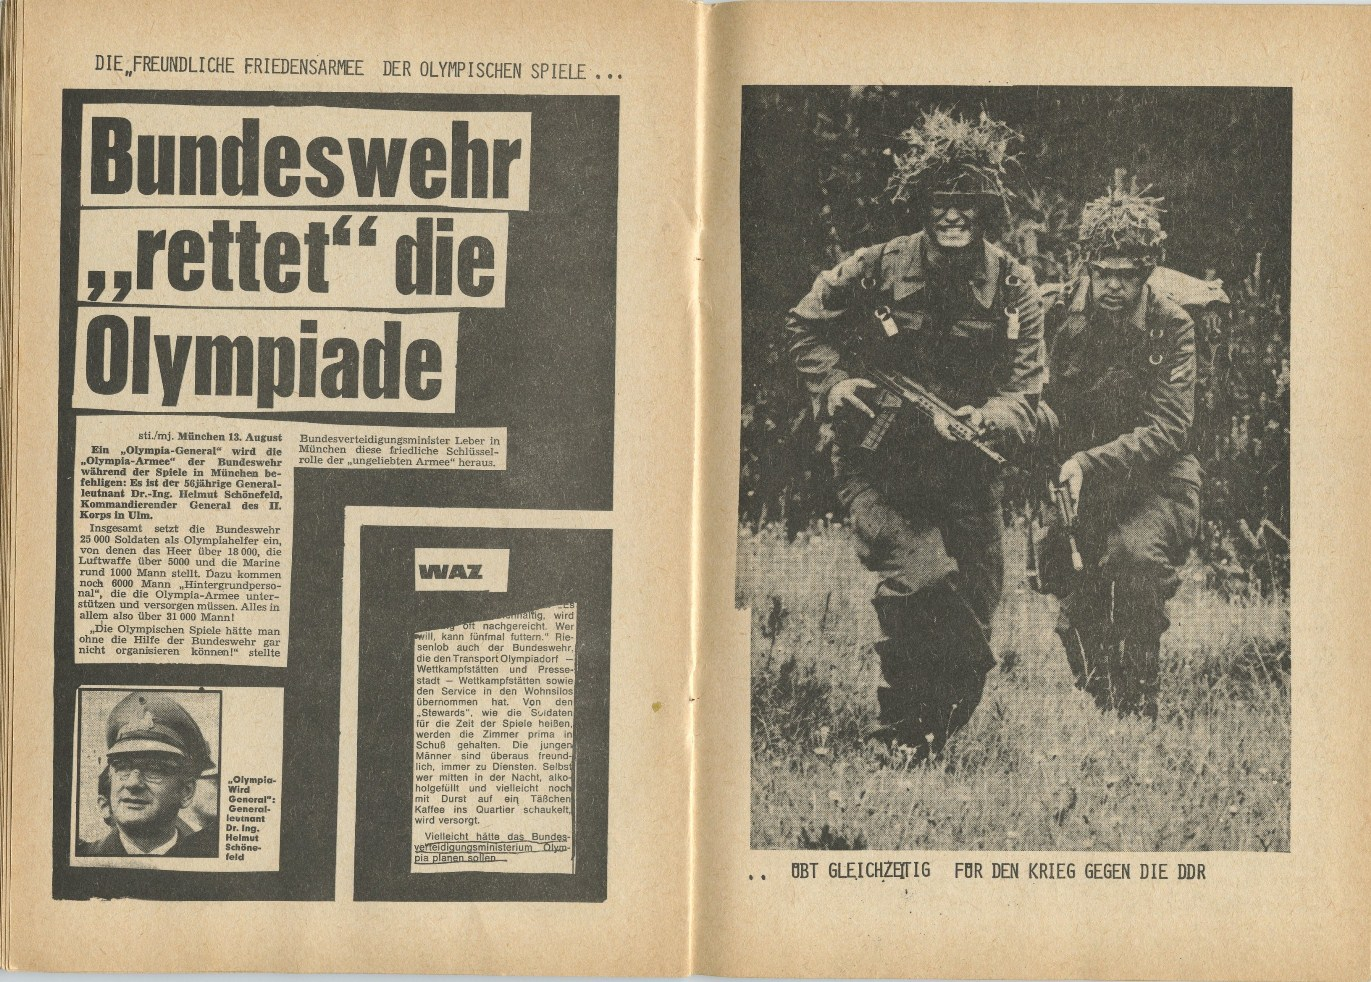 ZB_PBL_Roter_Antikriegstag_1972_15